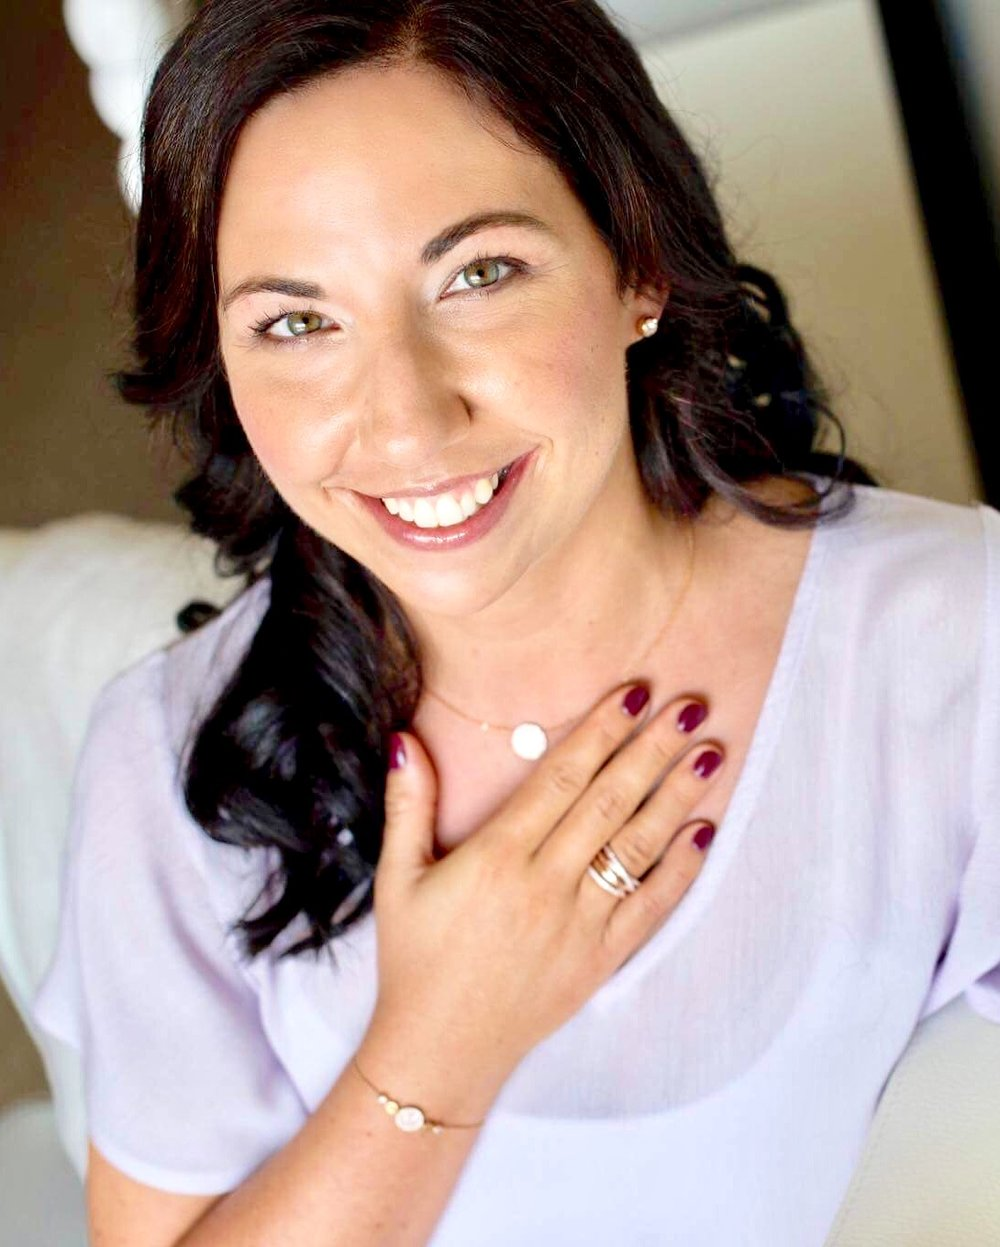 MARIANA HELPED ME TO GO DEEPER AND FIND OUT MY HIGHER CALLING -